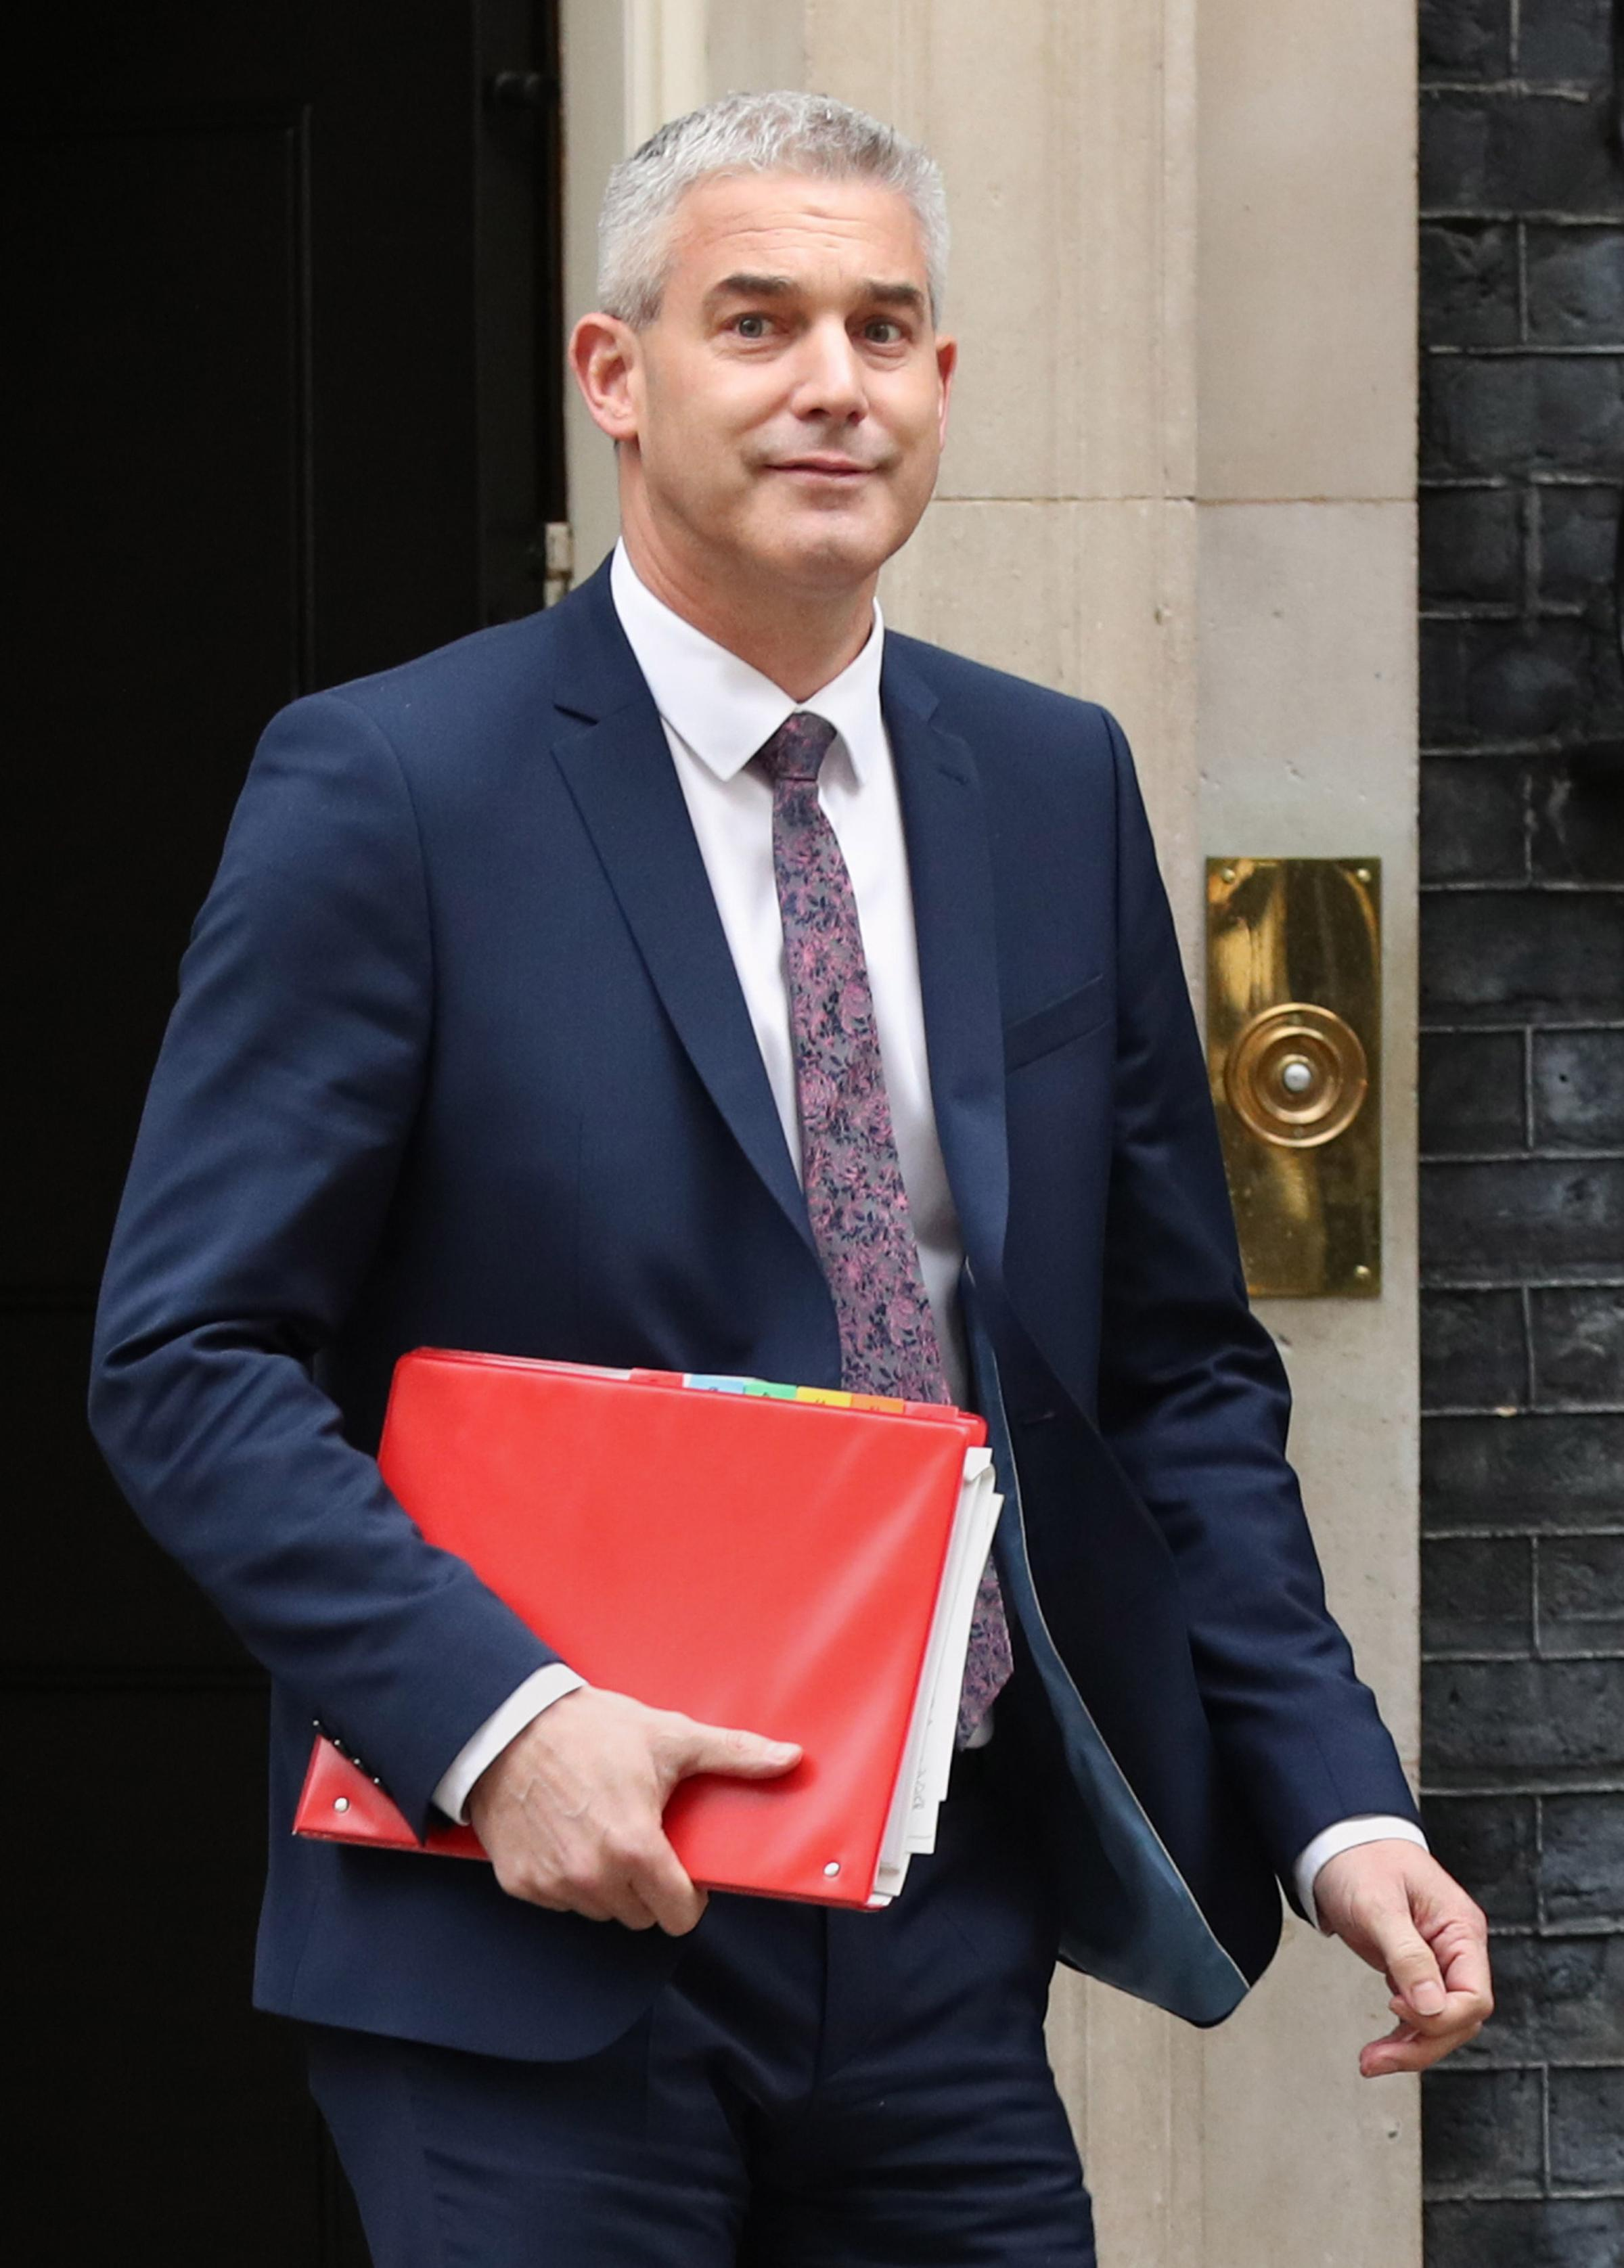 Brexit Secretary Stephen Barclay leaves 10 Downing Street in London following a meeting of the Cabinet. Picture: Jonathan Brady